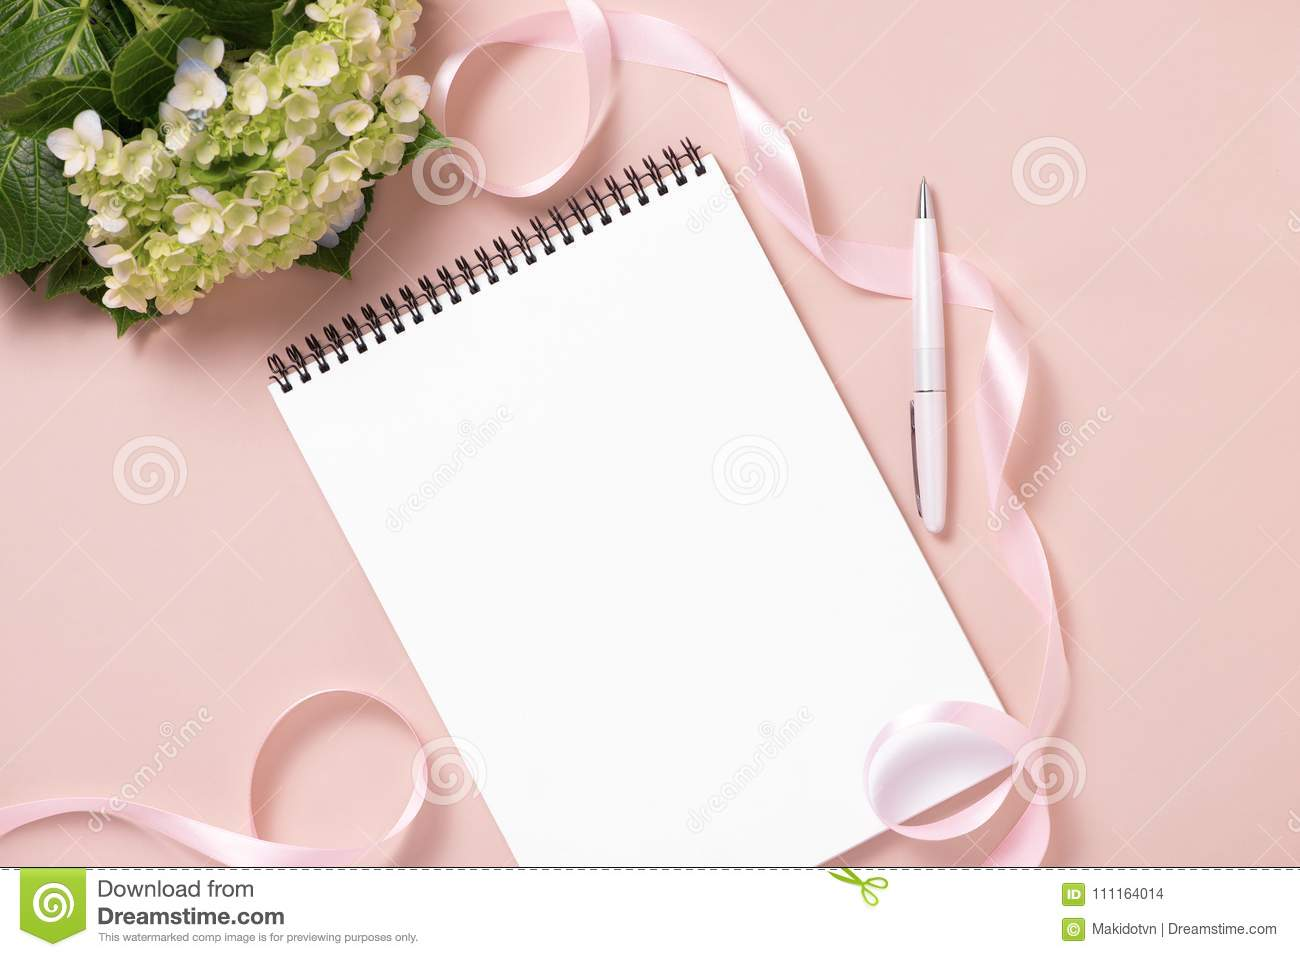 wedding to do list with flowers mockup planner flat lay stock